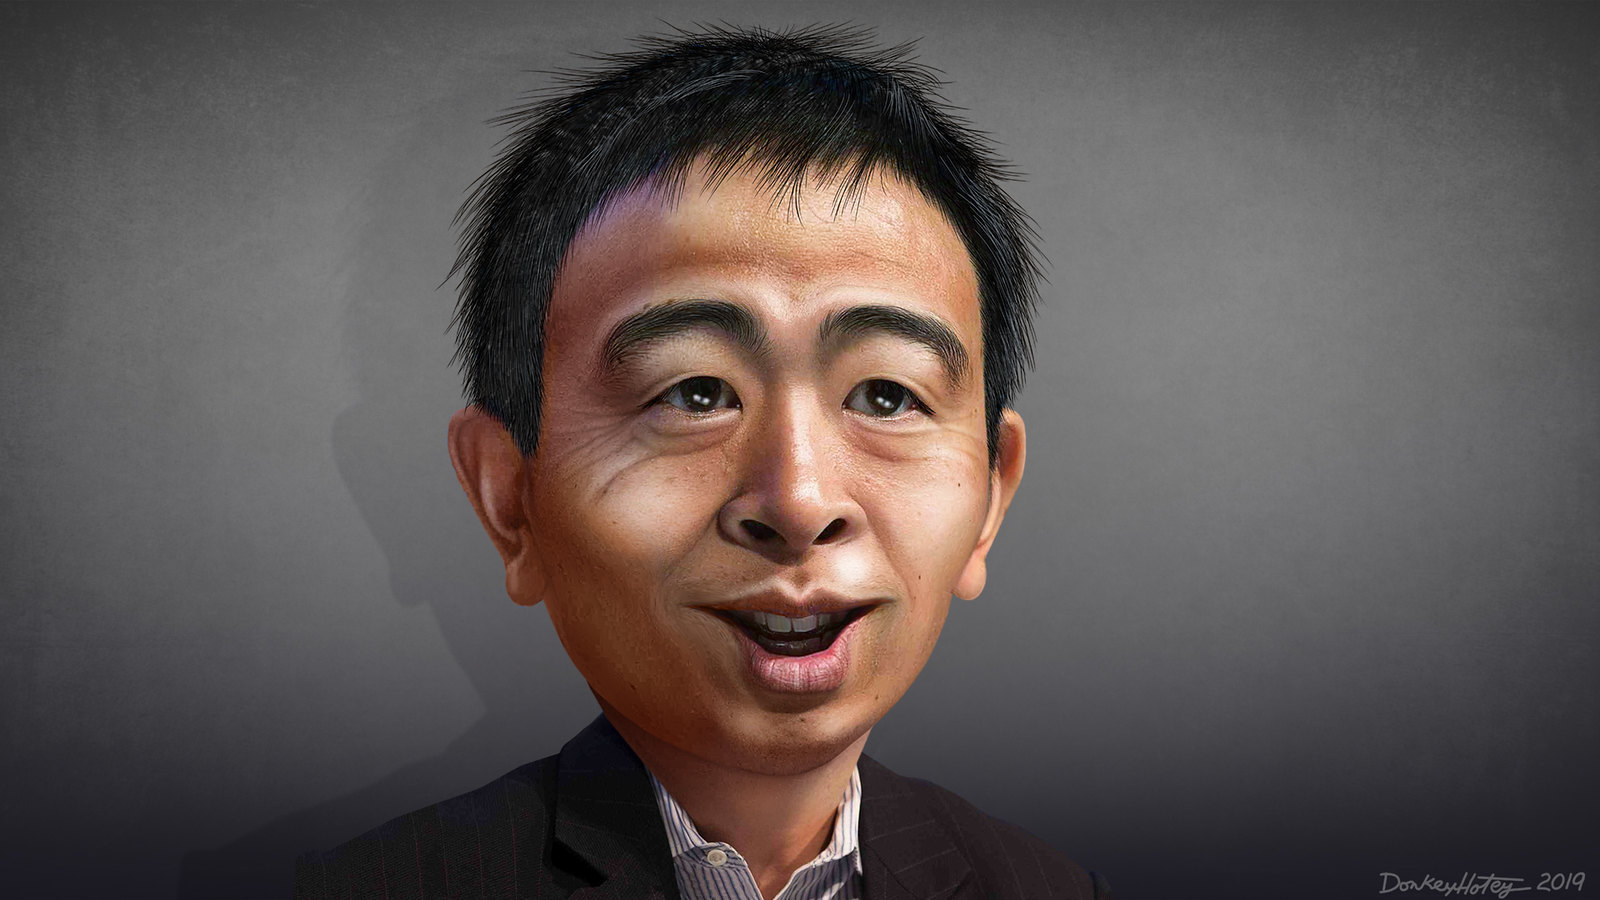 U.S. Presidential Candidate Andrew Yang says words about blockchain at Consensus